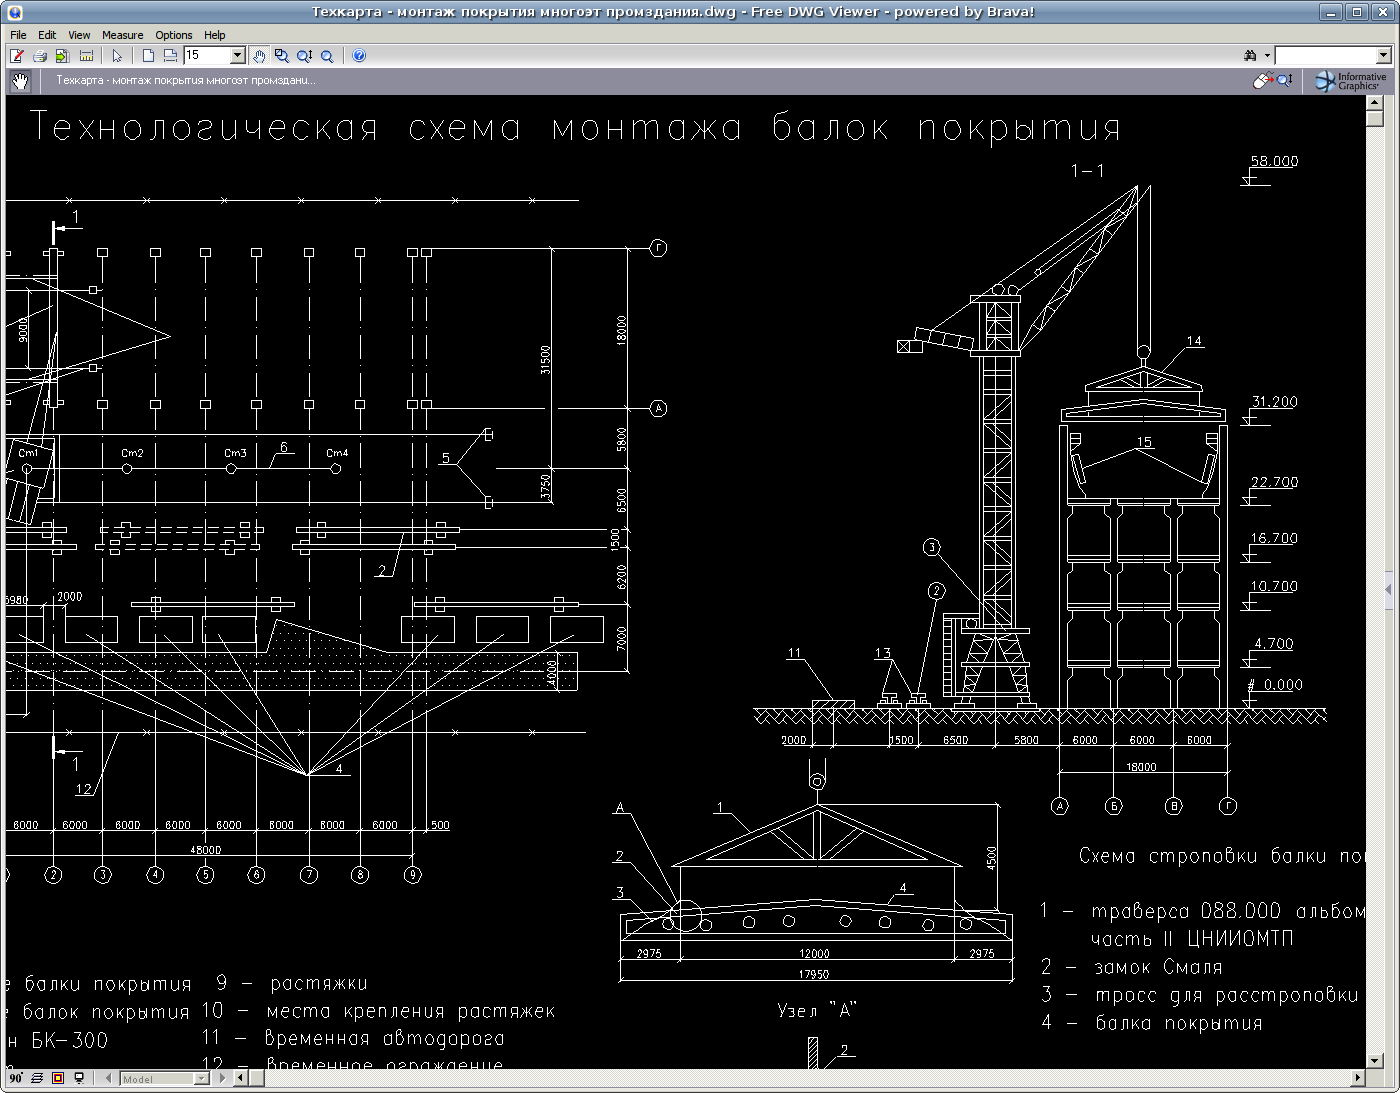 Free DWG Viewer 6.3.0.16